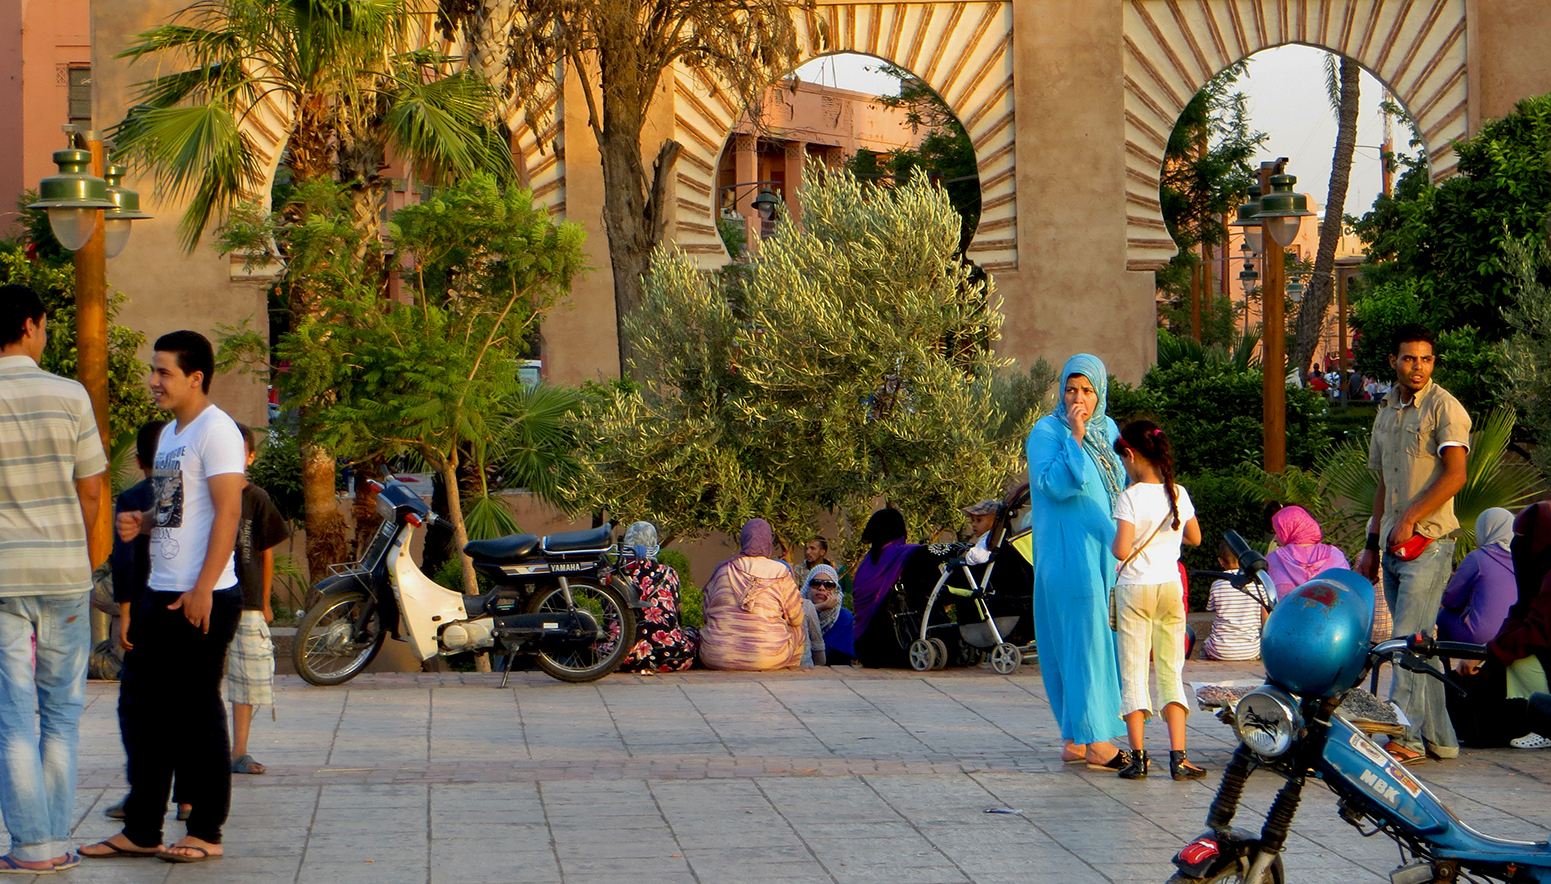 Morocco, Marrakesh Koutoubia plaza, courtesy to J. Hayes and K. Tandy